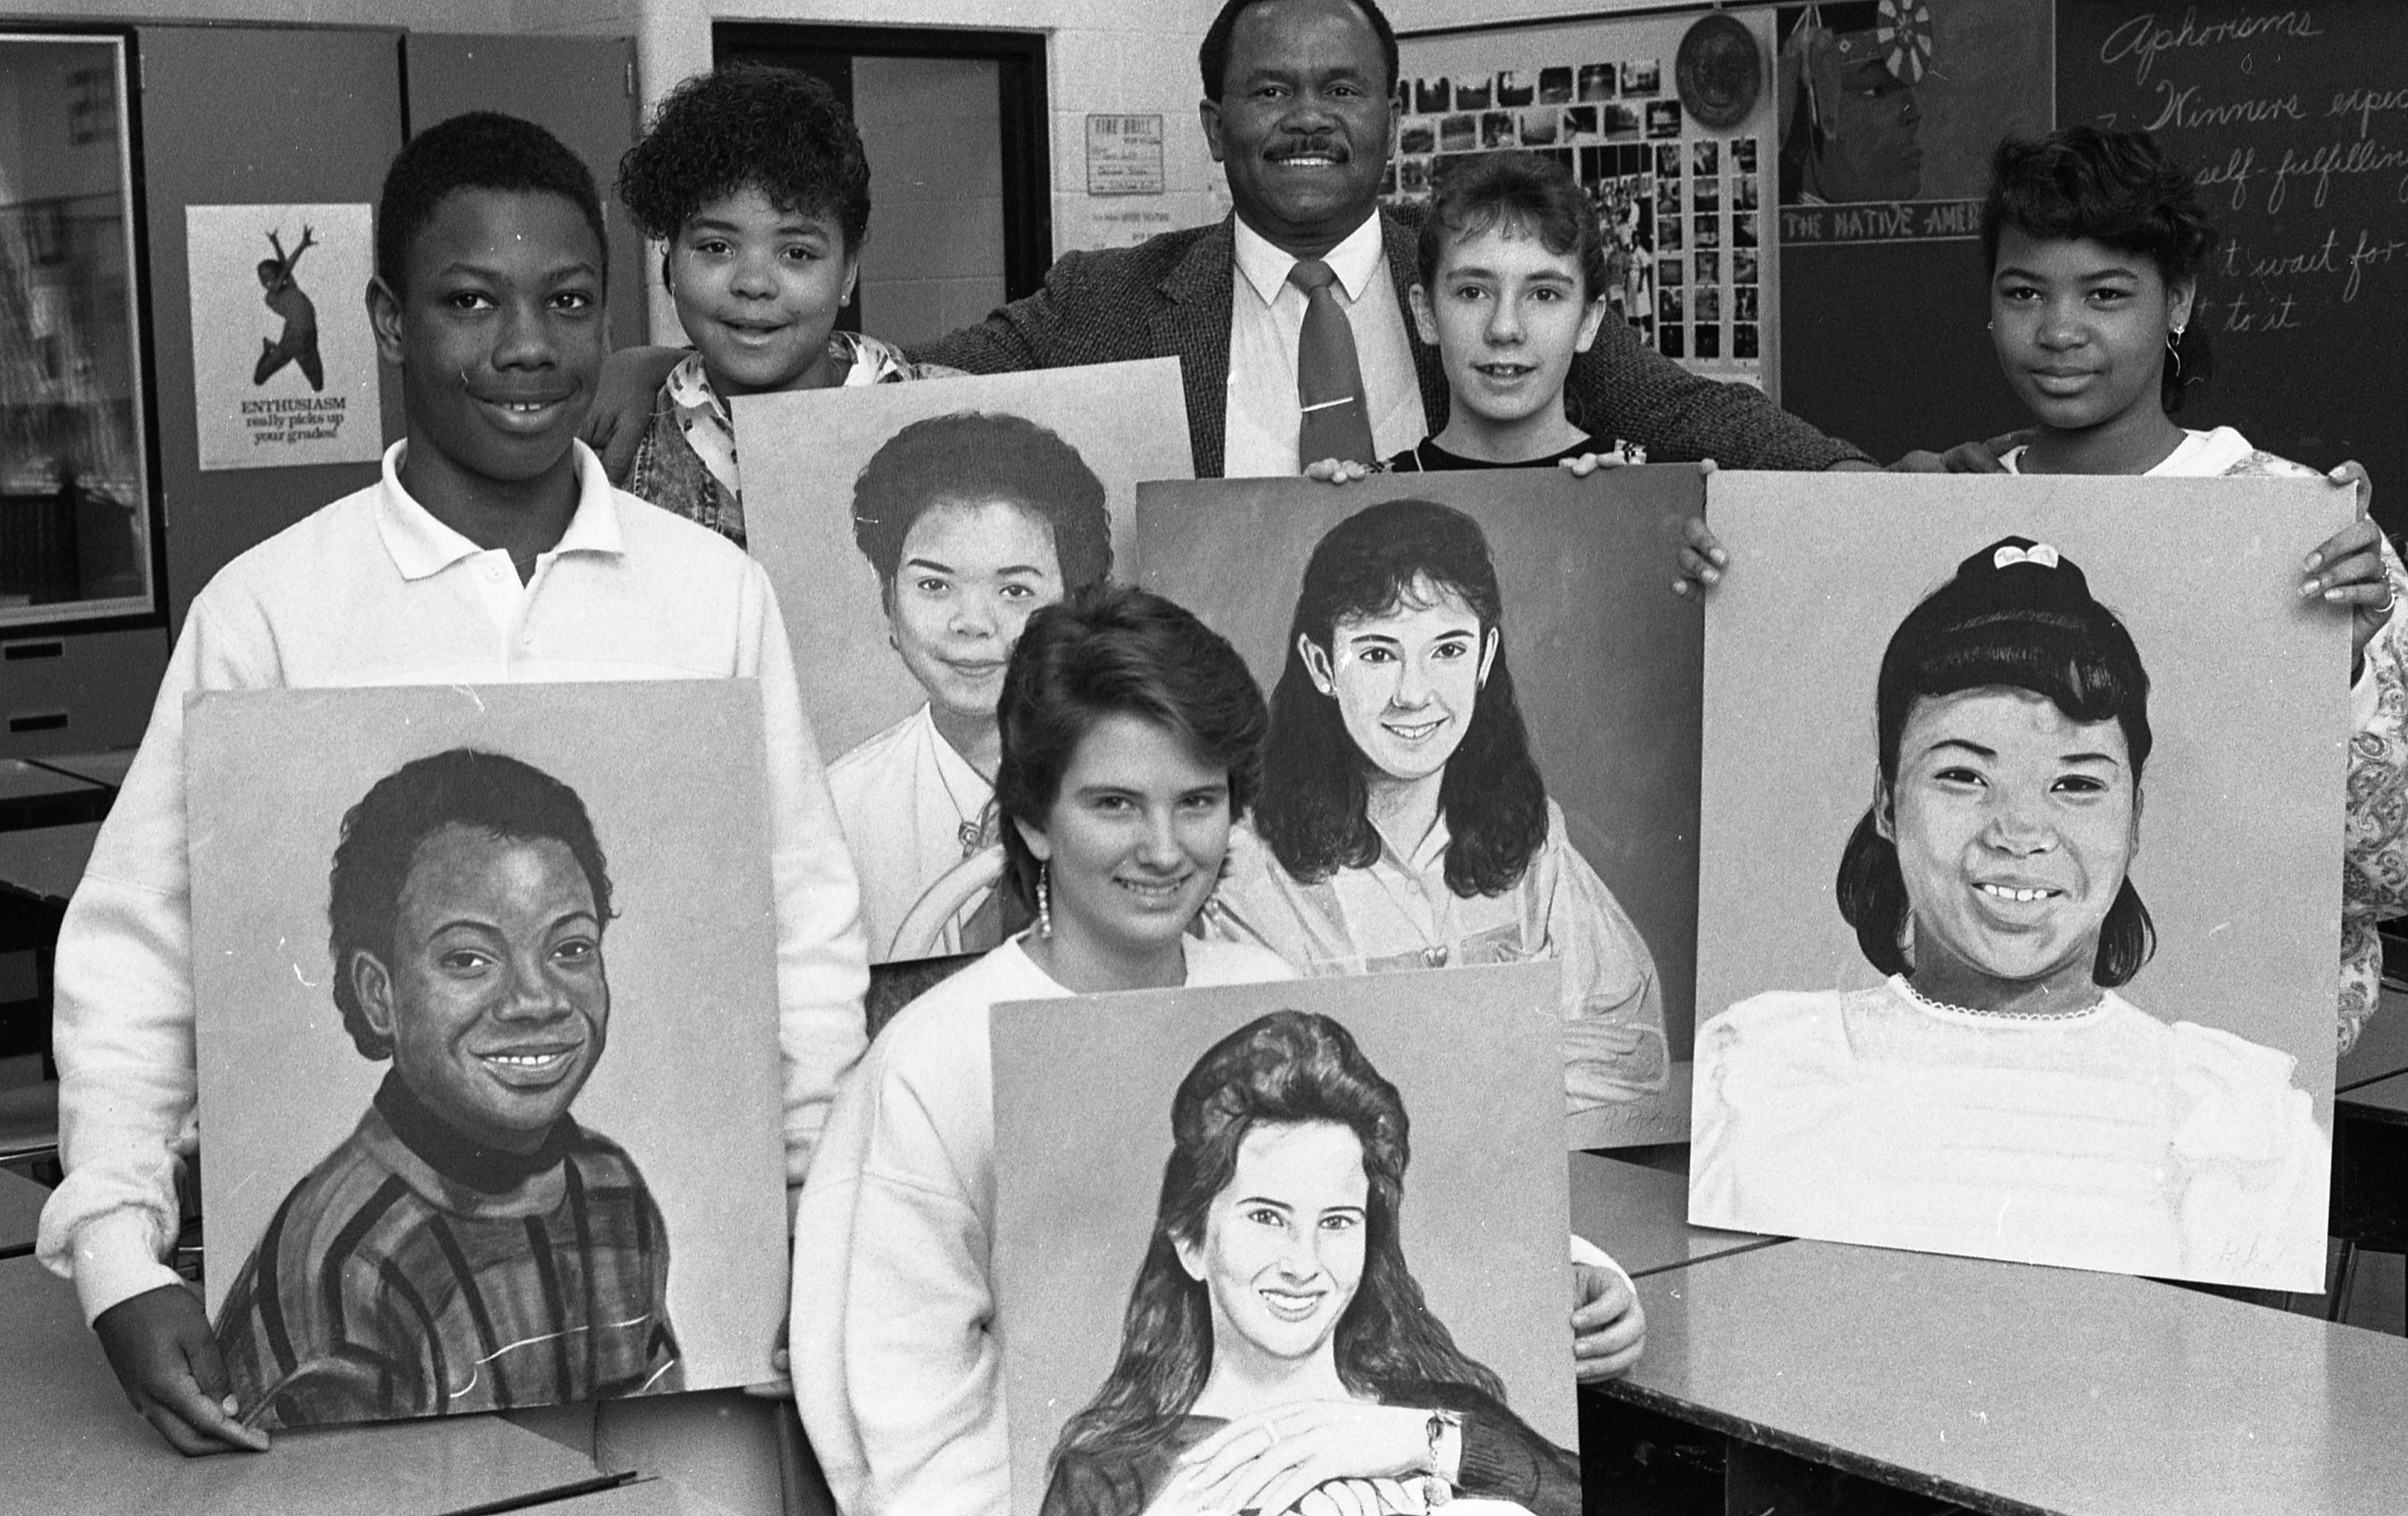 Teacher, Ray Pipkin, With Students & Their Portraits, February 1988 image